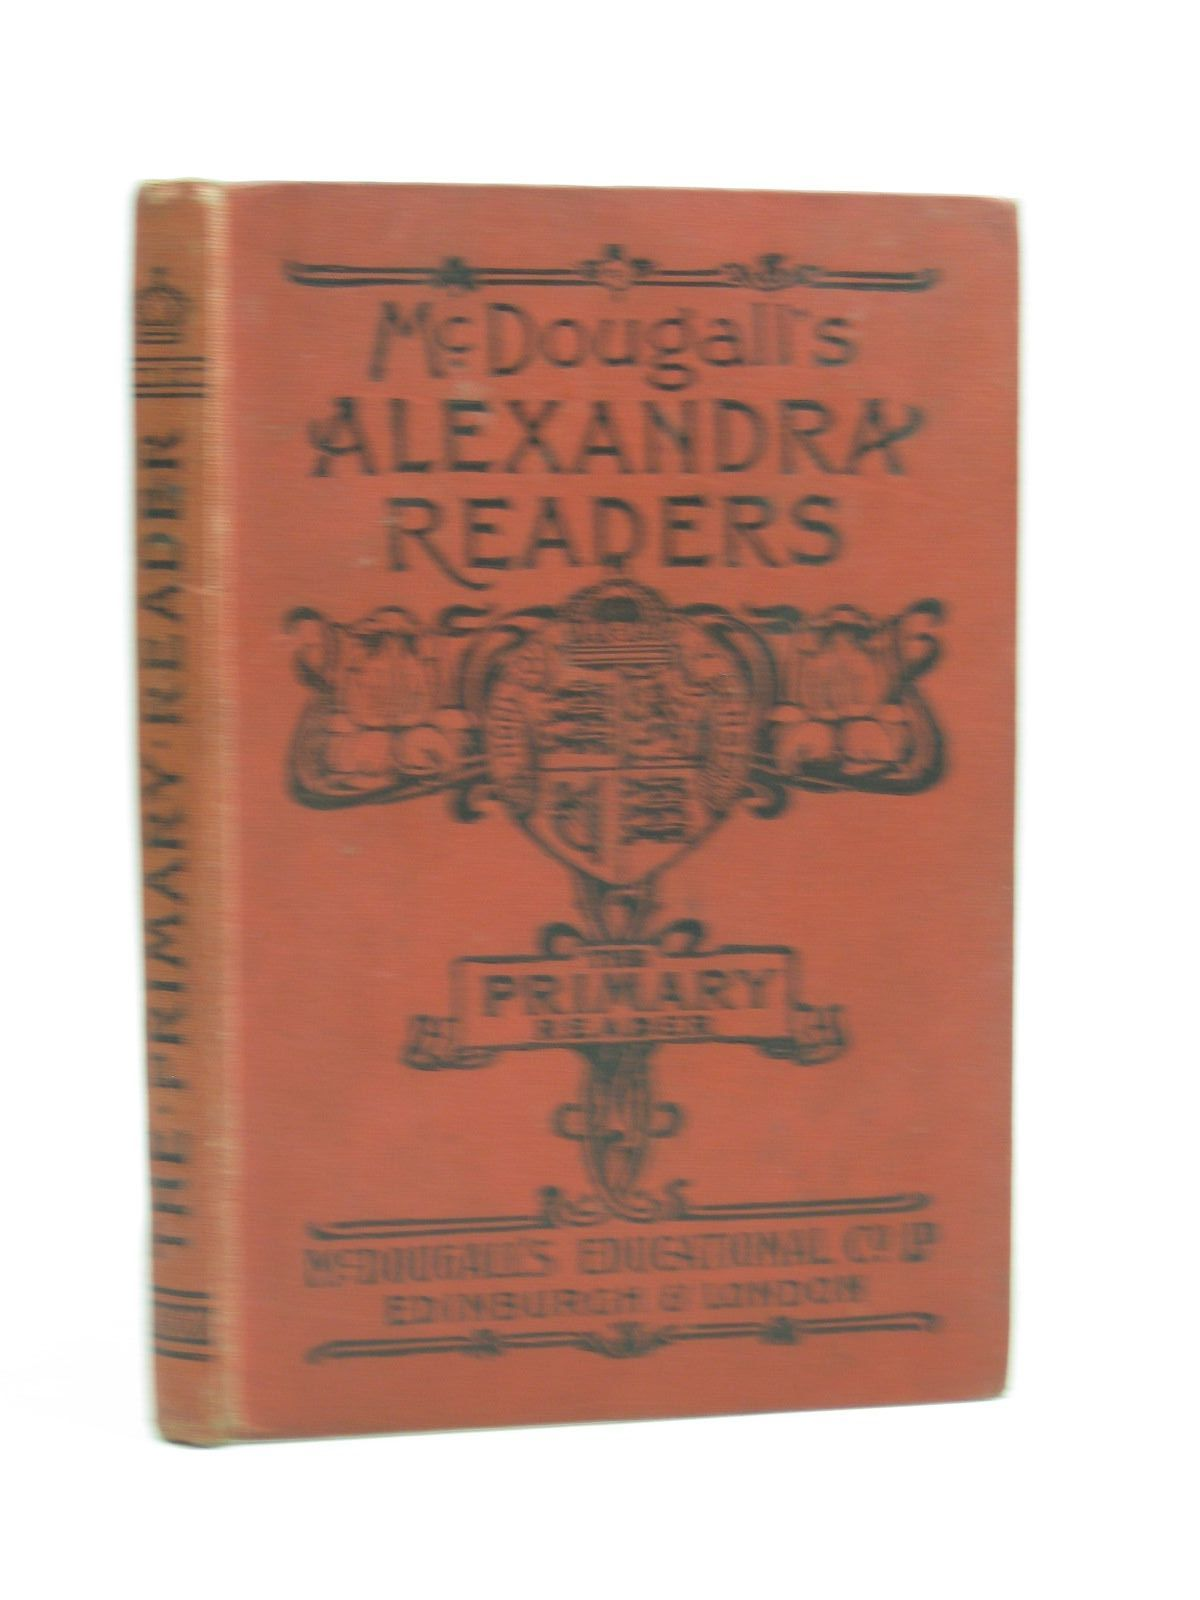 Photo of MCDOUGALL'S ALEXANDRA READERS - THE PRIMARY READER illustrated by Brown, Michael et al., published by McDougall's Educational Co. Ltd. (STOCK CODE: 1314418)  for sale by Stella & Rose's Books